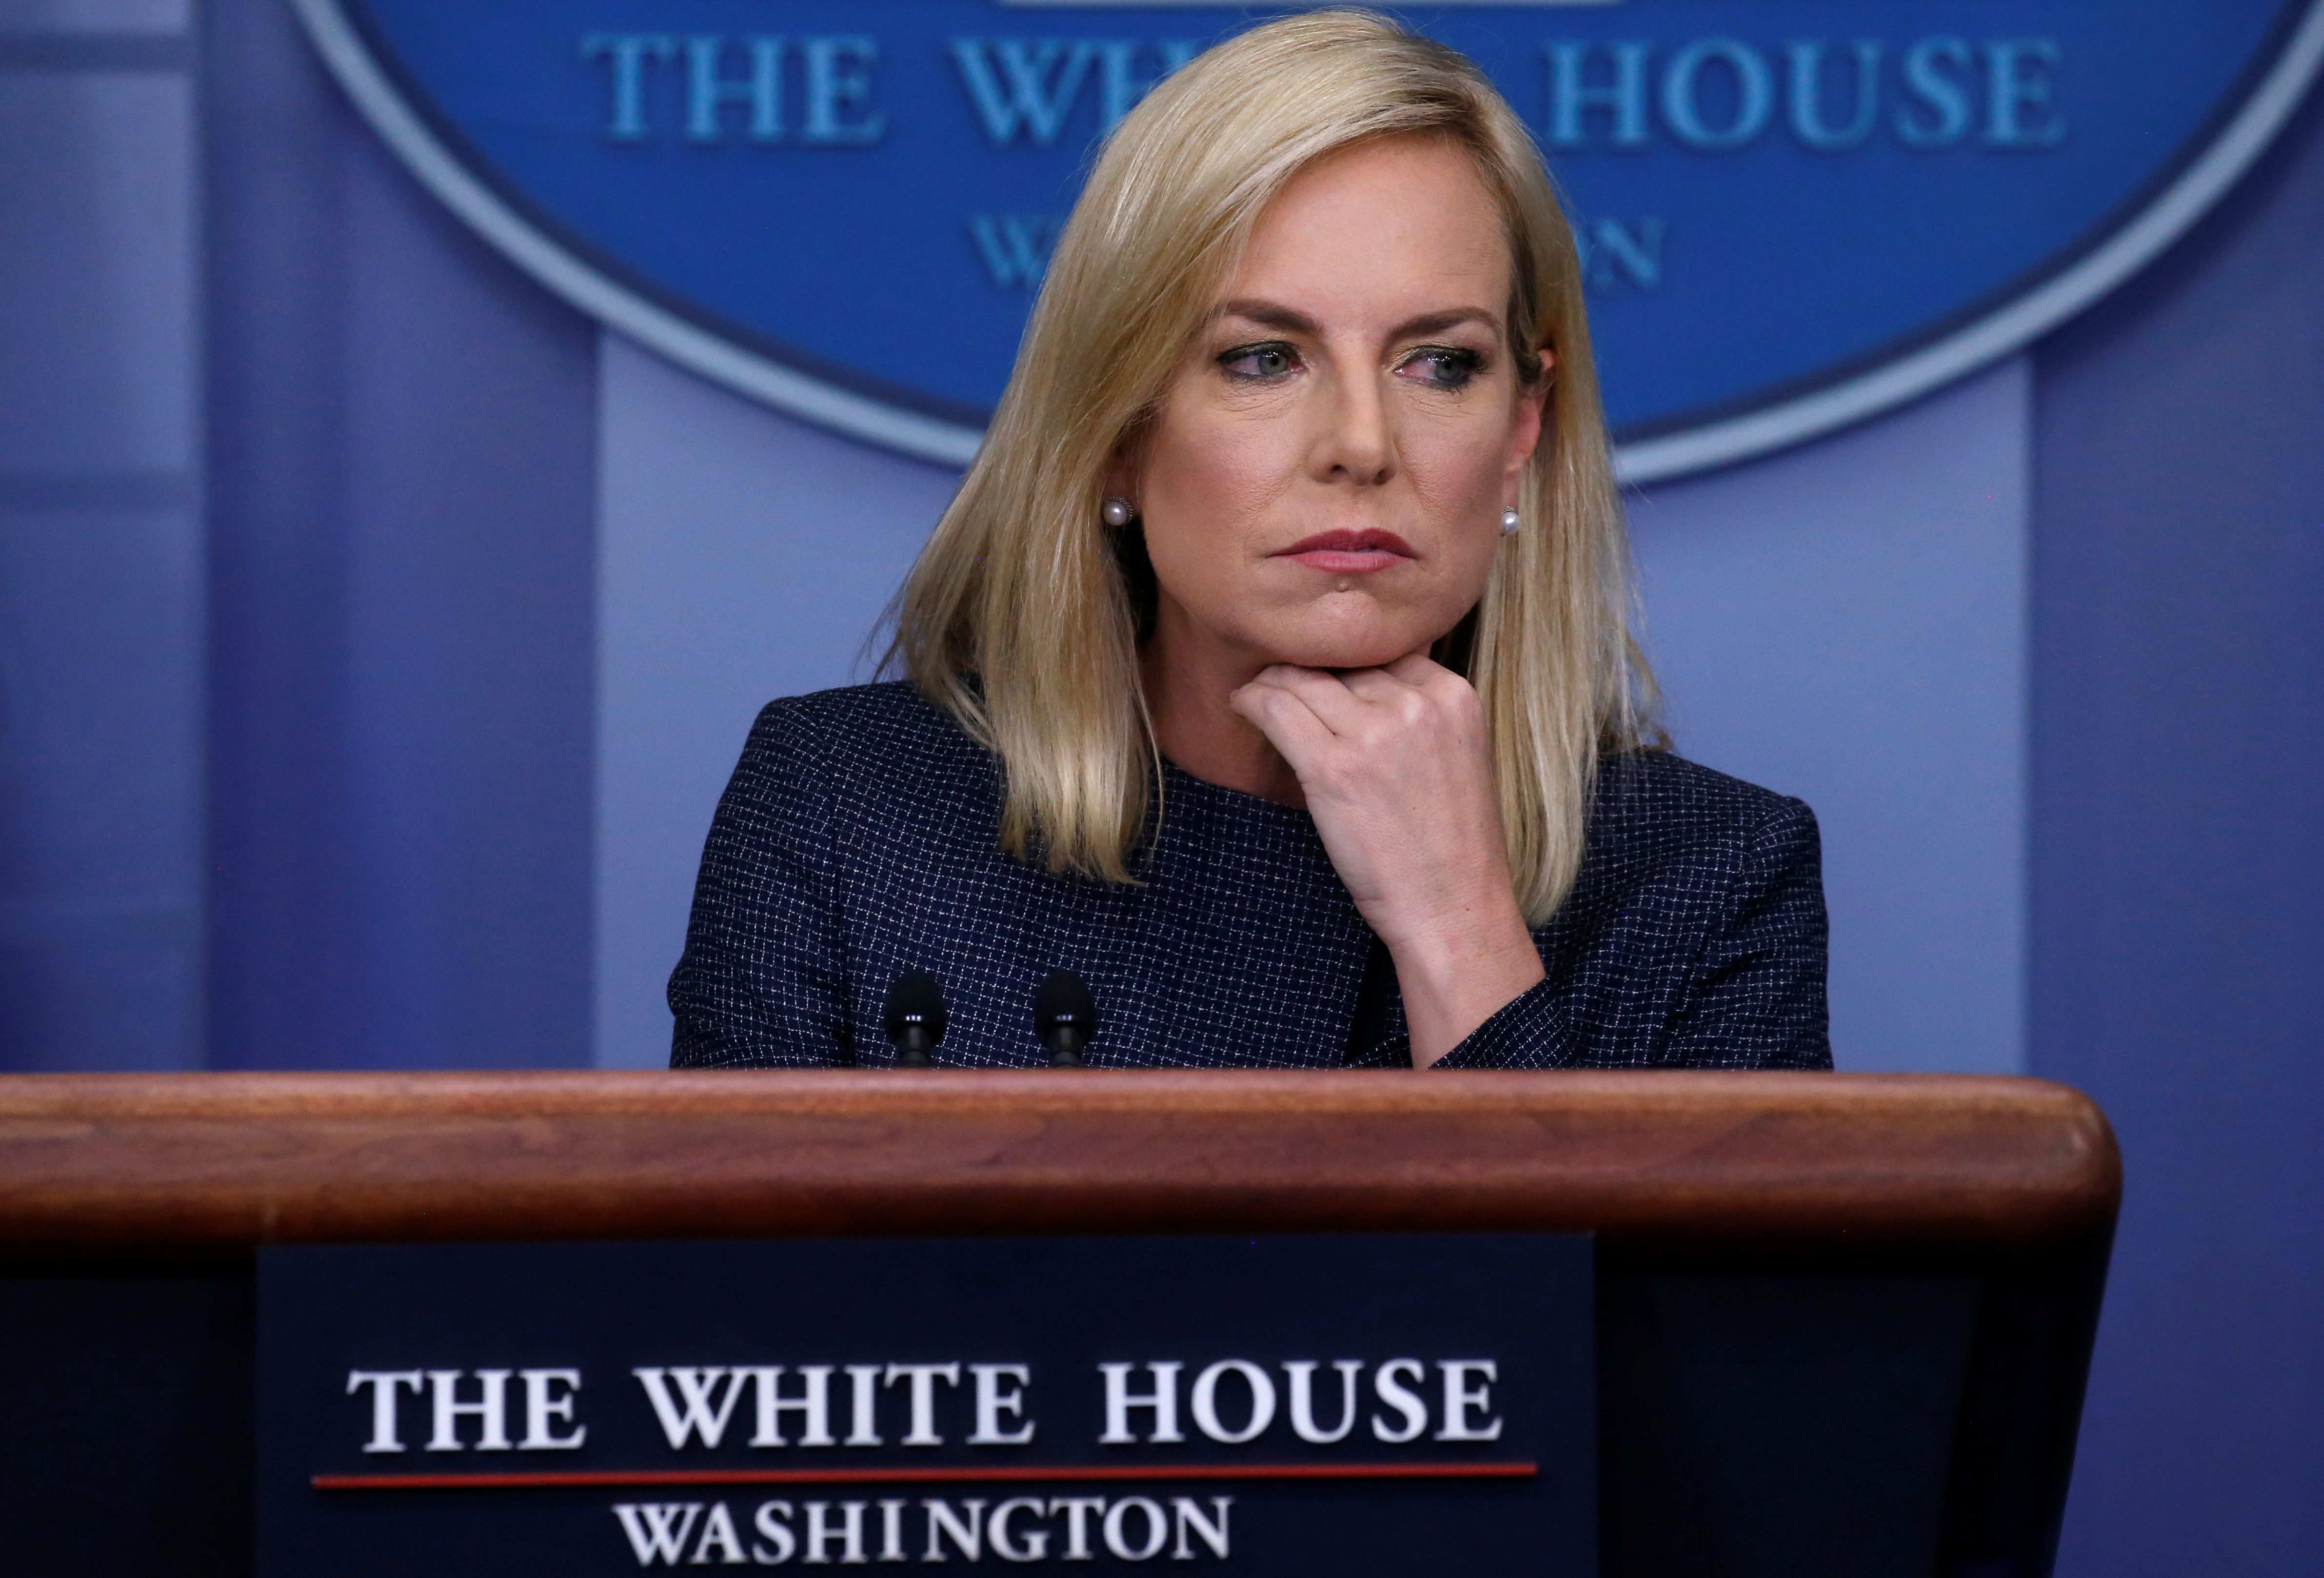 U.S. Homeland Security Secretary Kirstjen Nielsen answers questions during the daily briefing at the White House in Washington, D.C., U.S., June 18, 2018. REUTERS/Leah Millis